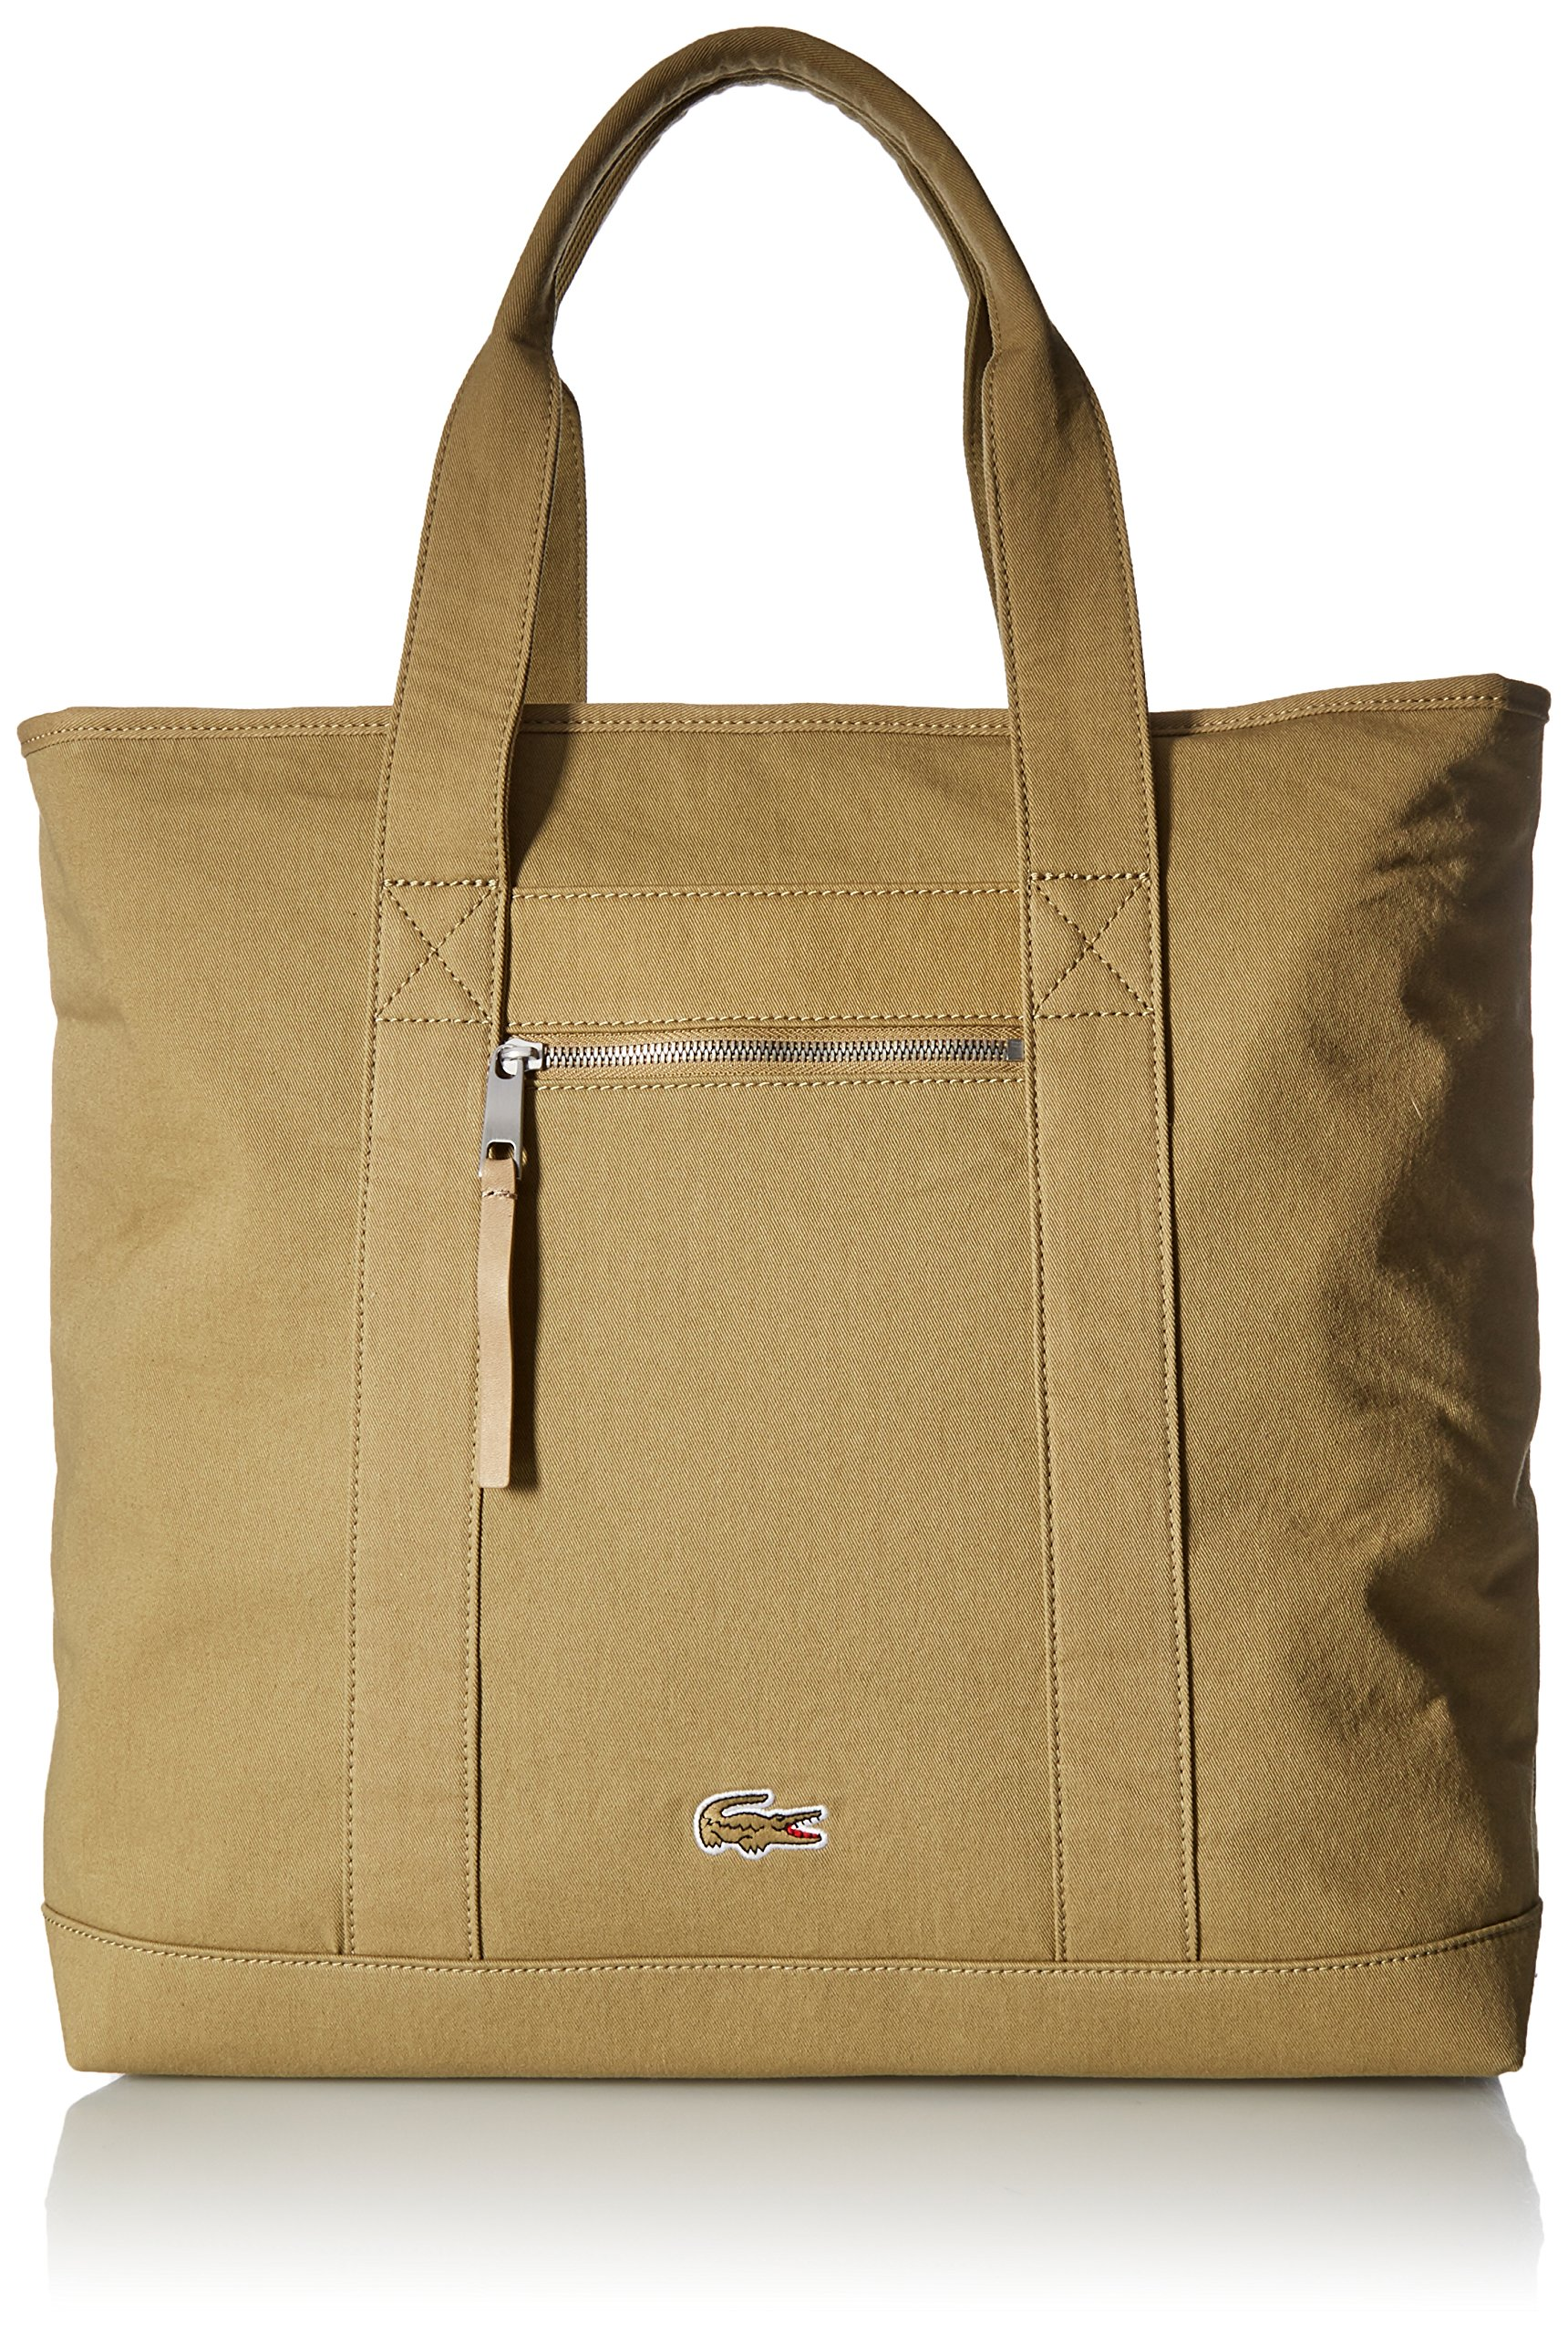 Lacoste Men's MEN'S SUMMER LARGE SHOPPER BAG Accessory, -slate green, ONE